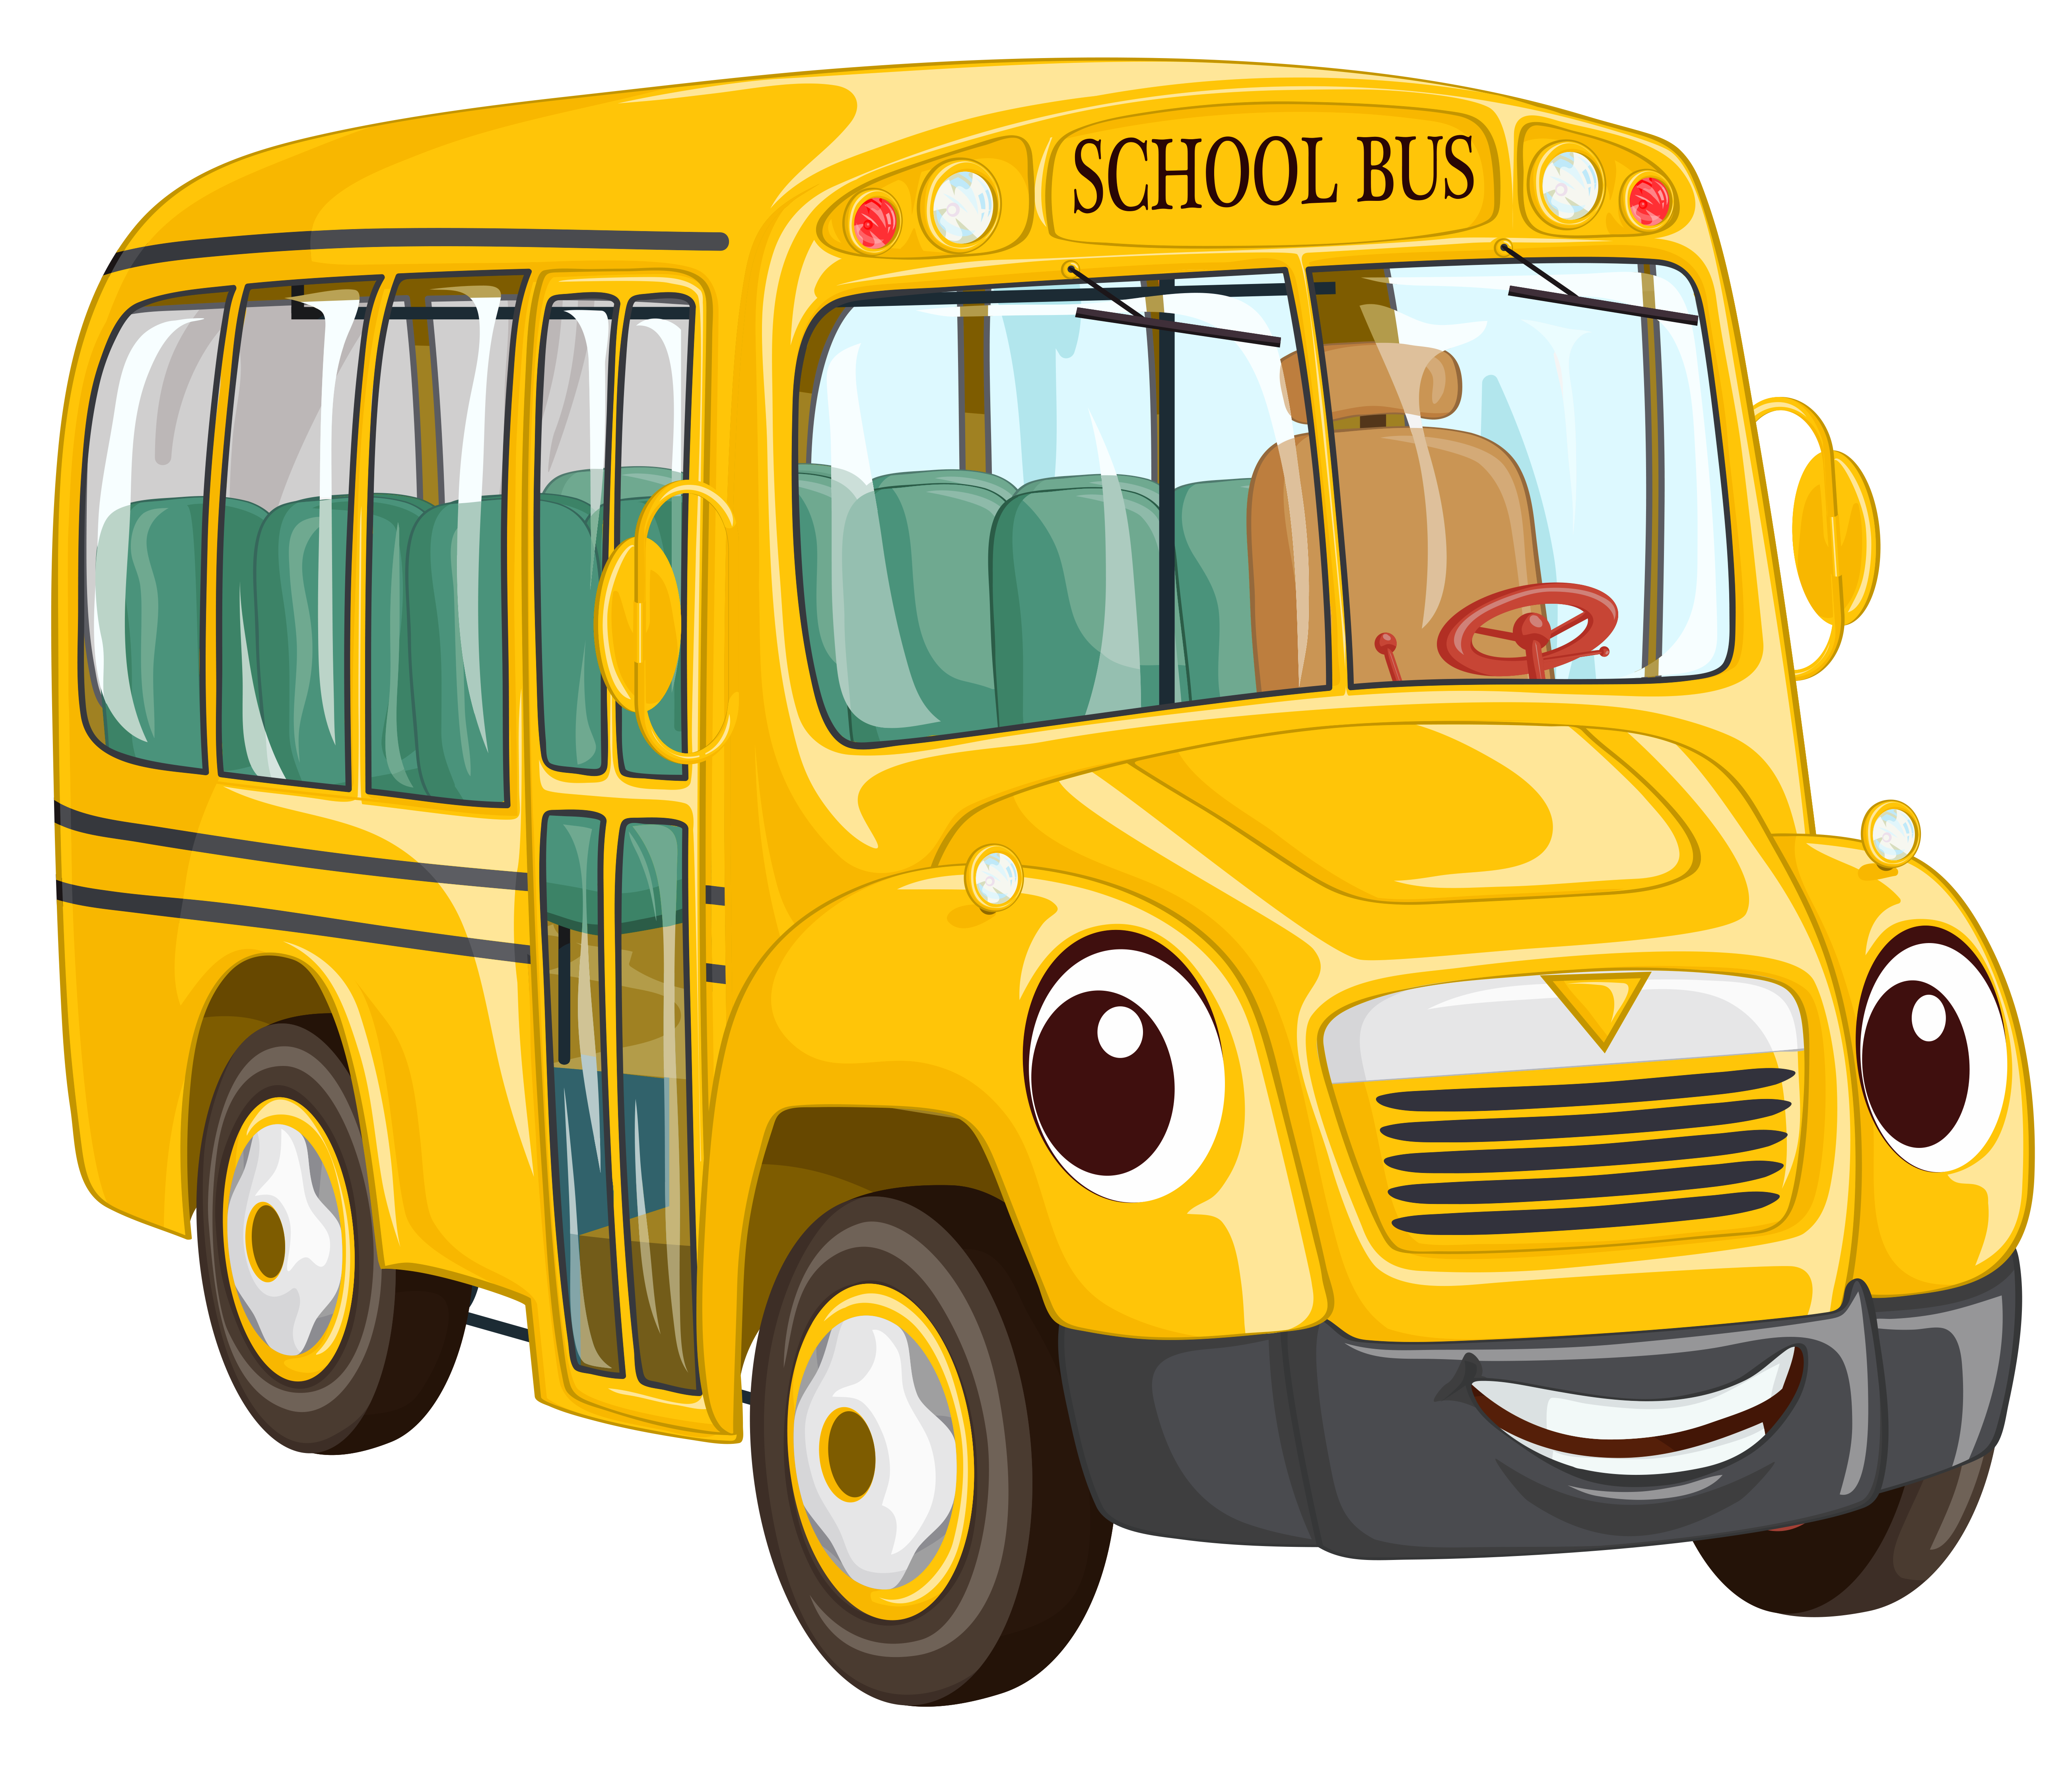 School bus clipart no background black and white download School Bus PNG Clipart Image | Gallery Yopriceville - High-Quality ... black and white download